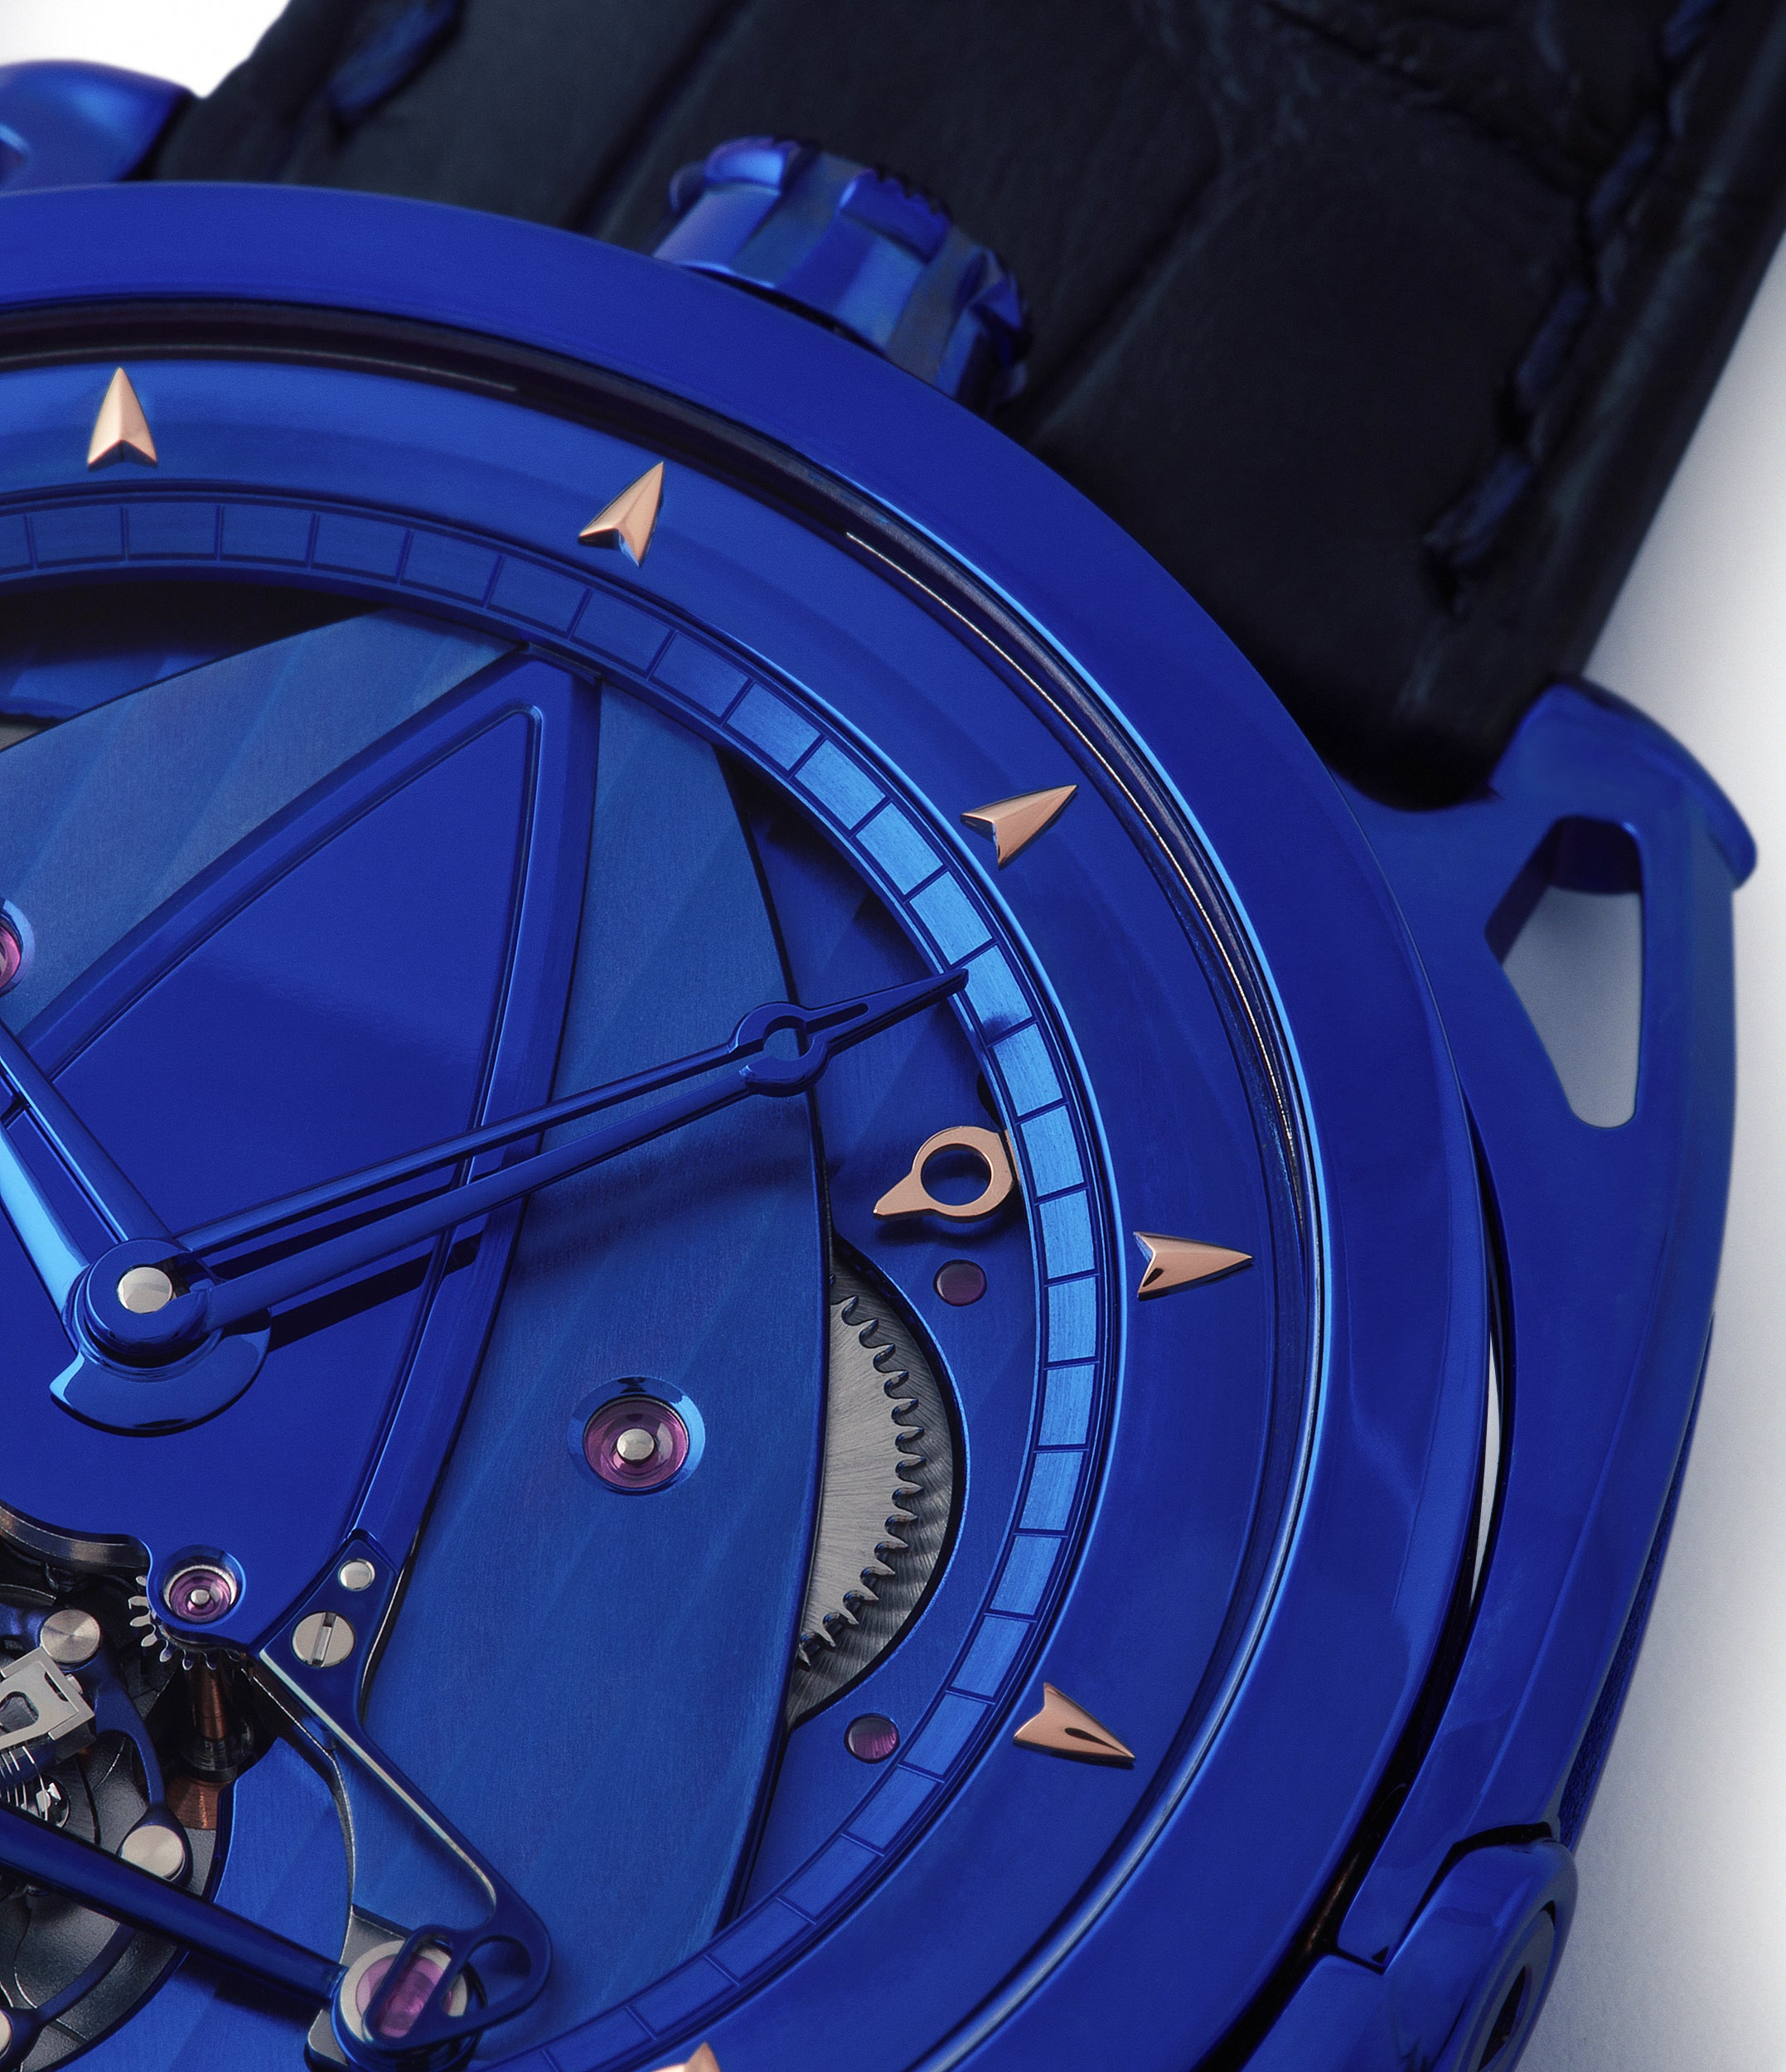 DB28 De Bethune Kind of Blue titanium rare limited edition independent watchmaker for sale at A Collected Man London UK specilaist of rare watches